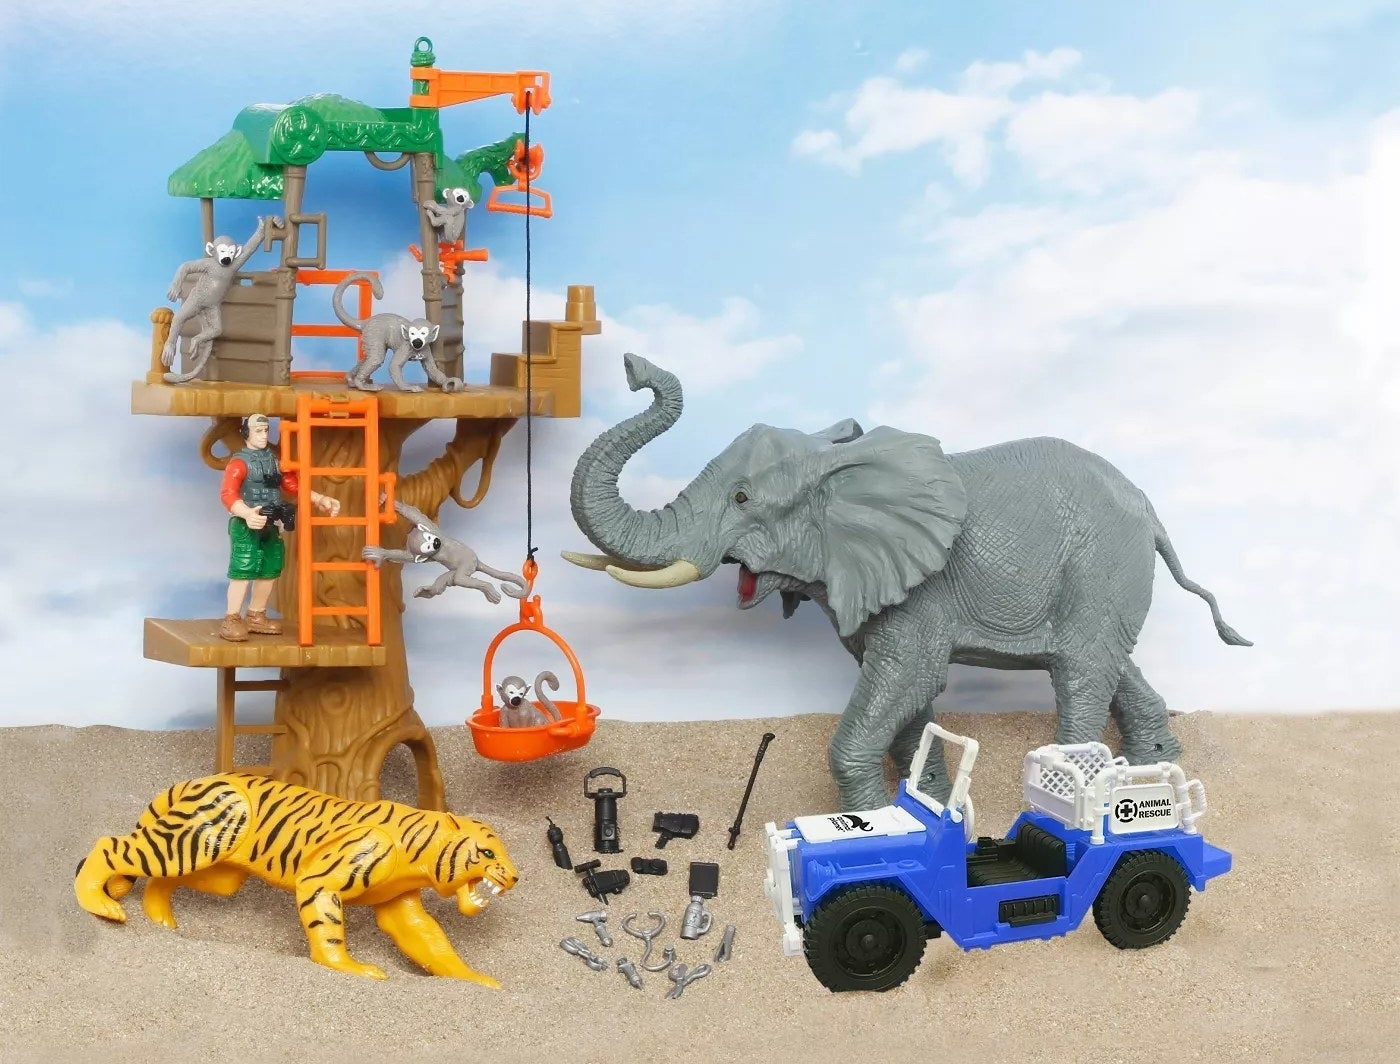 A toy treehouse with five monkeys, an explorer, a tiger, an elephant, a rescue Jeep, and 15 rescue accessories